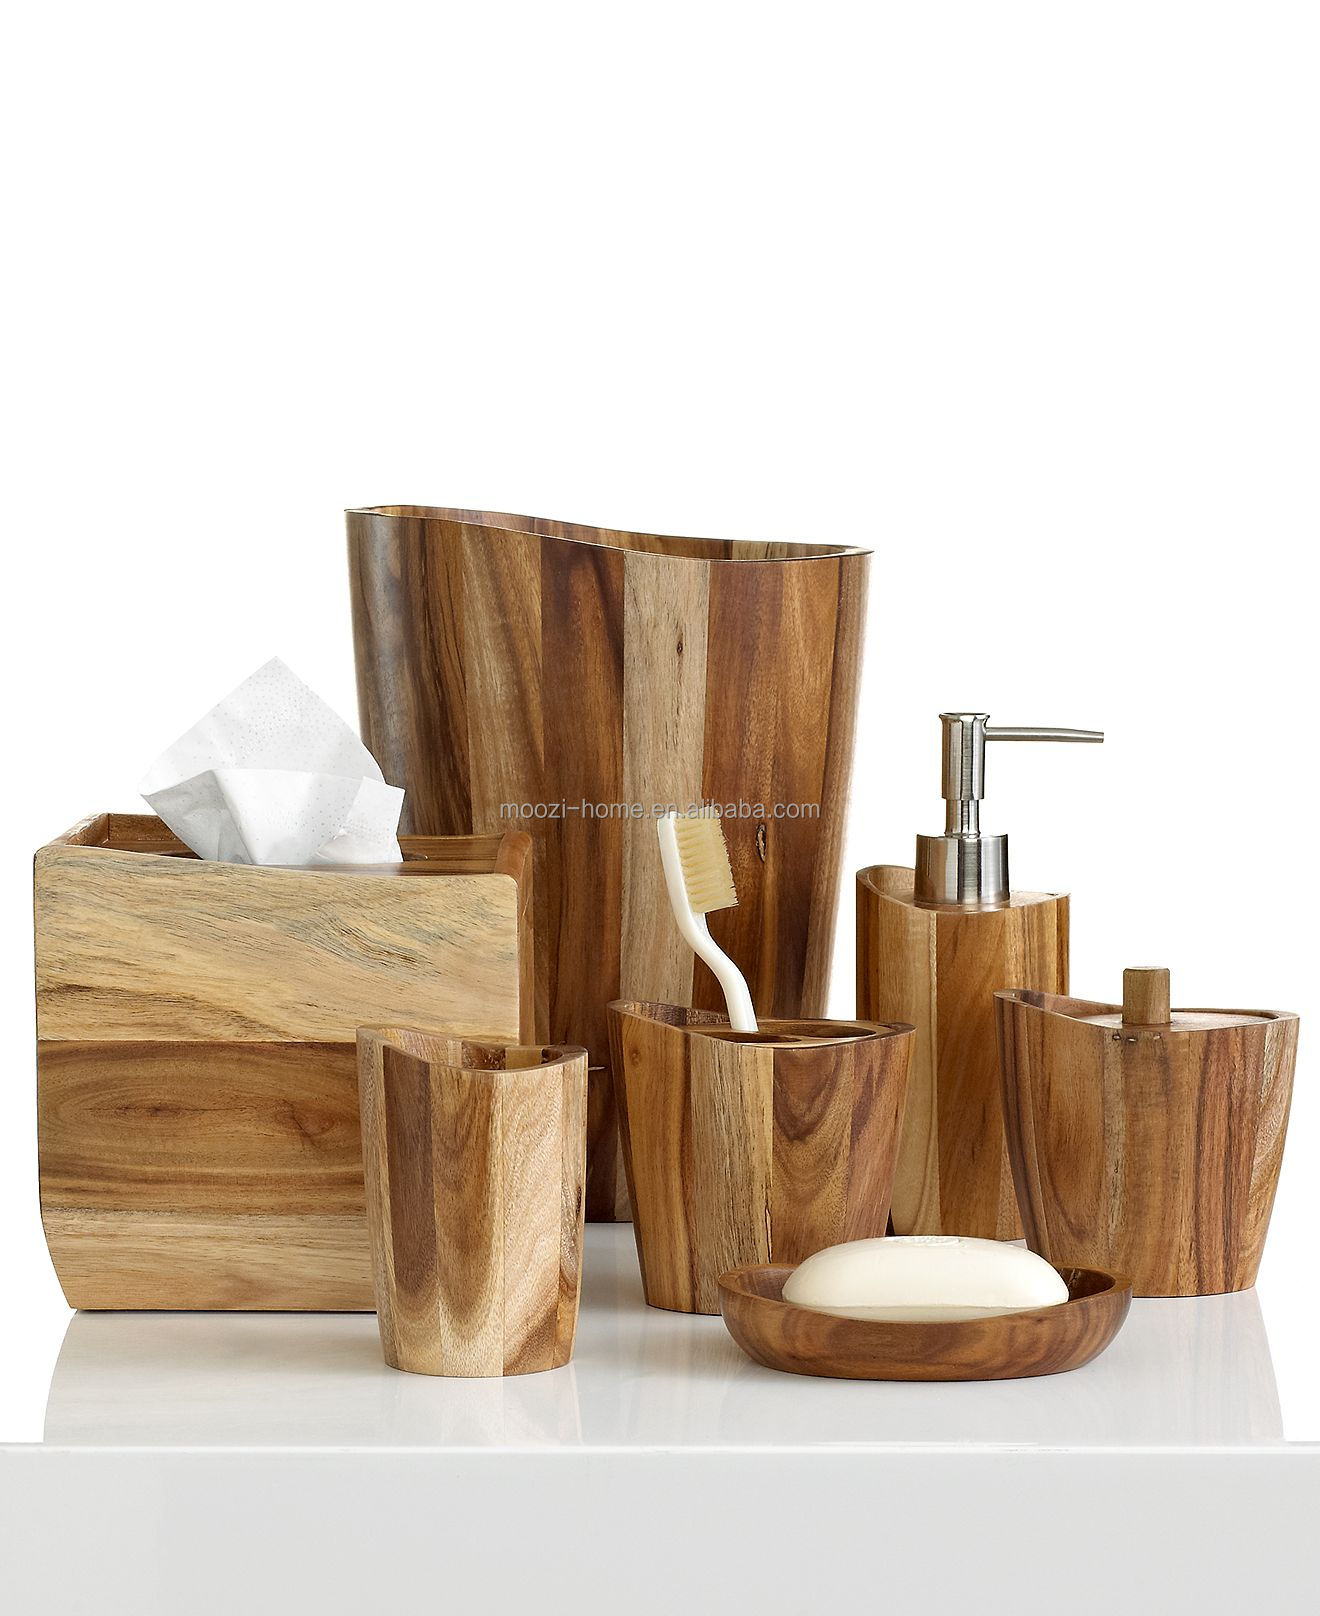 Natural wooden bath sets wood bathroom accessories for Bathroom sets and accessories